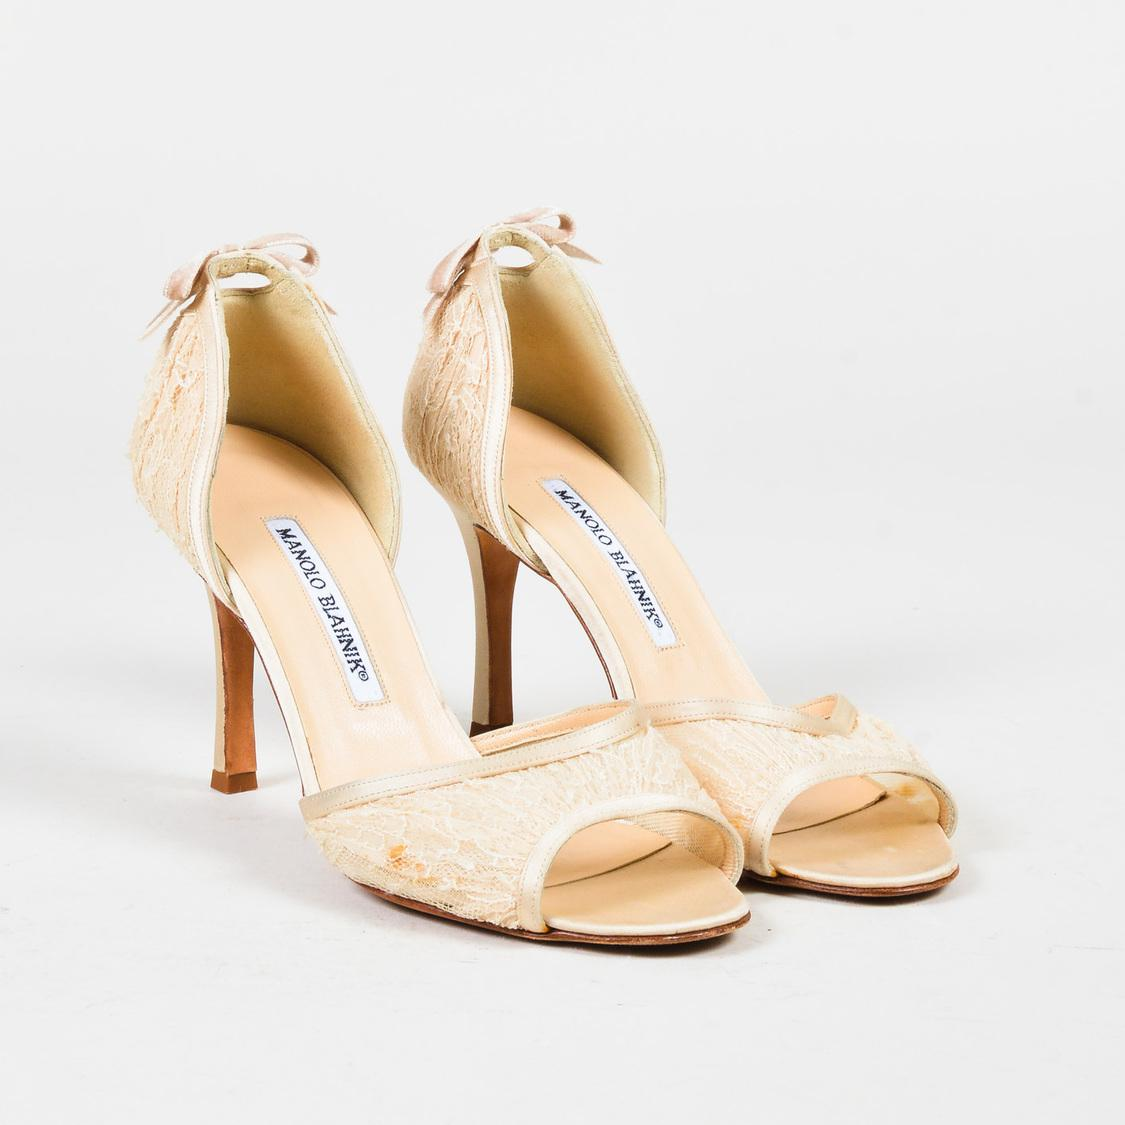 2ec8a0e860 Manolo Blahnik. Women's Natural Cream Lace Satin Trim Peep Toe D Orsay  Sandals